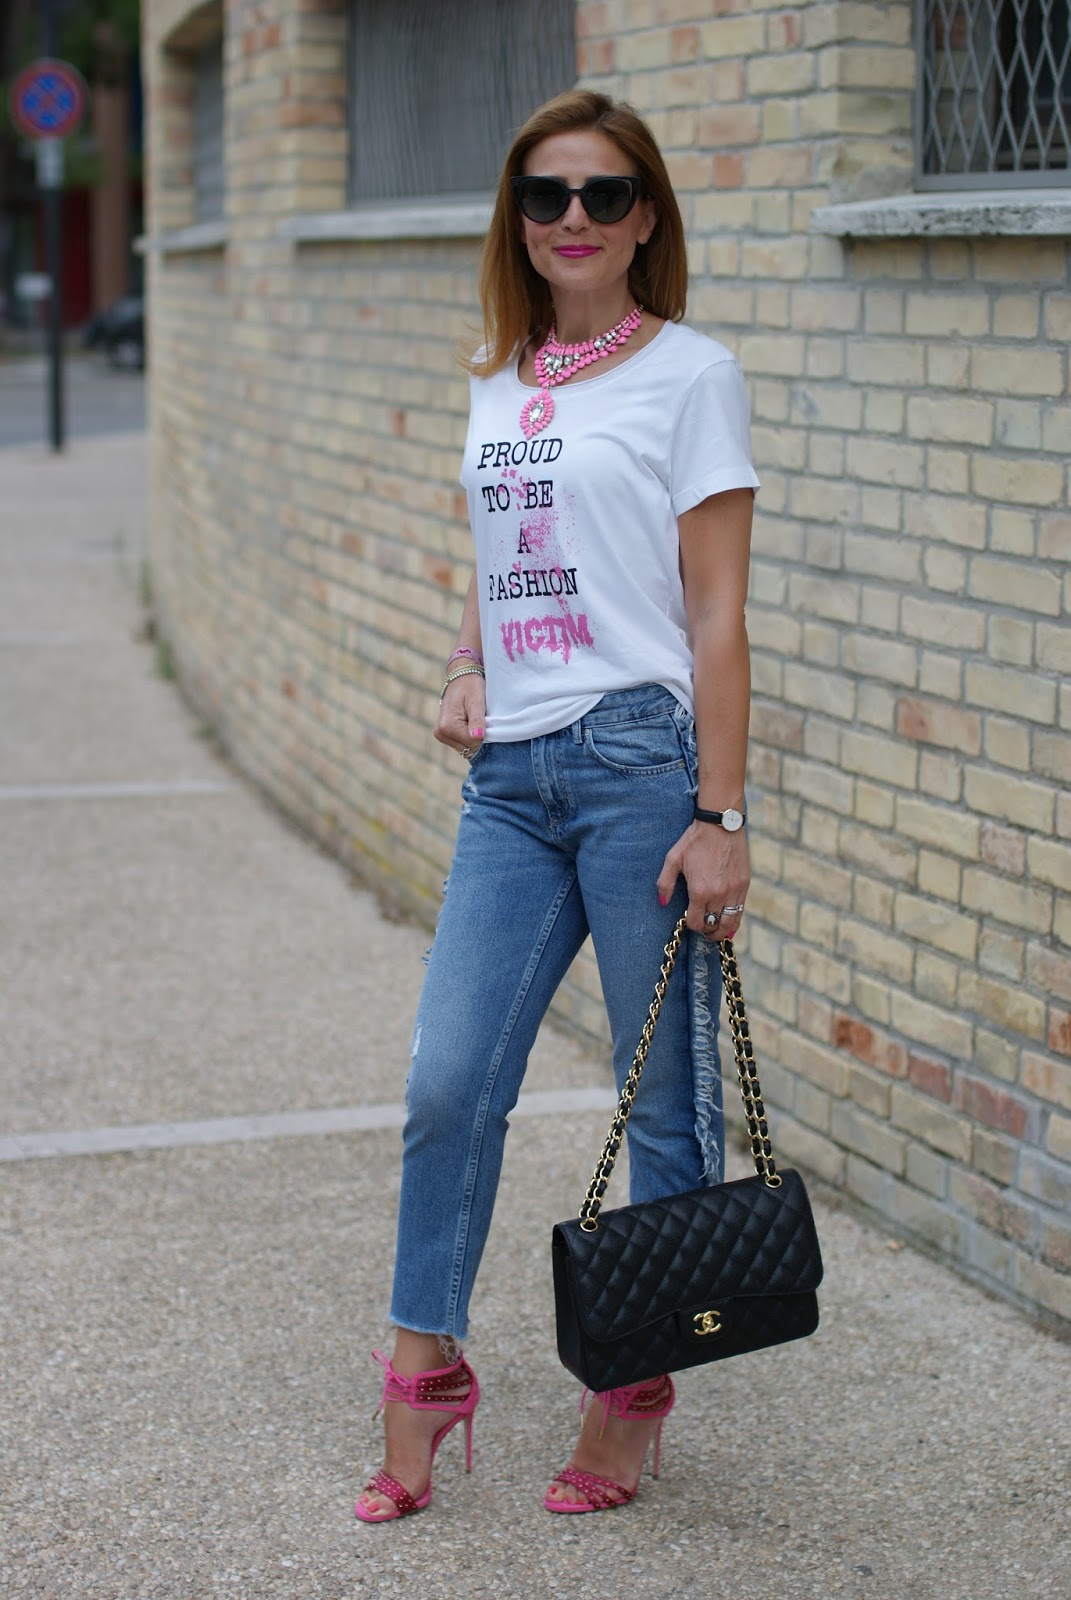 How to wear jeans with heels on Fashion and Cookies fashion blog, fashion blogger style